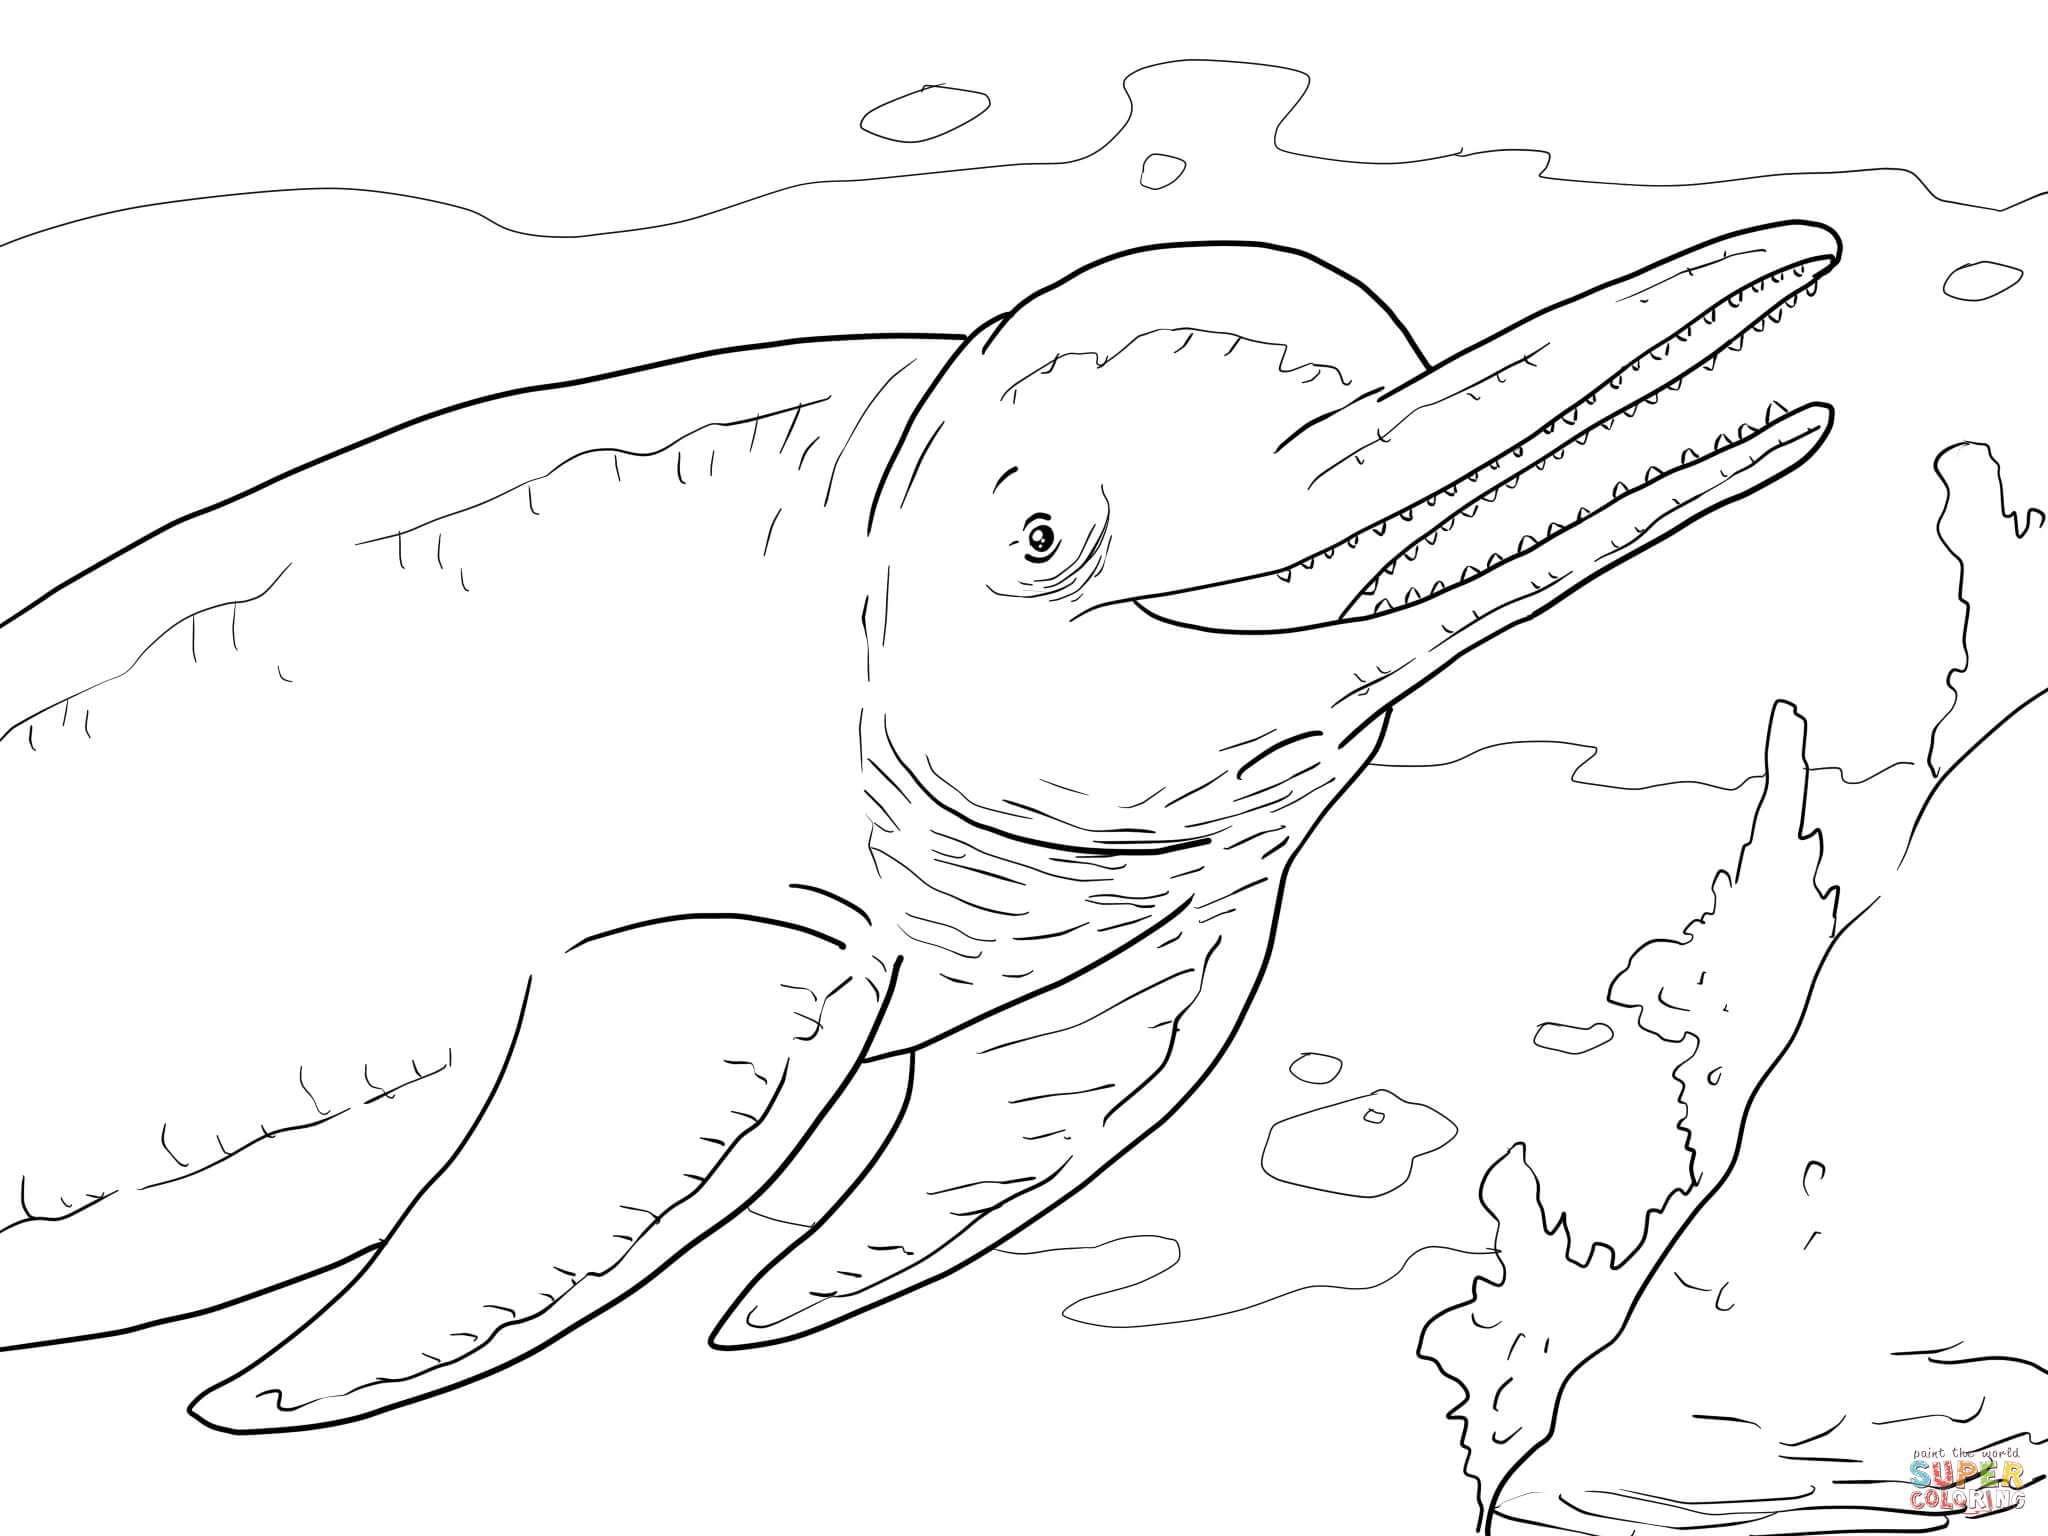 dolphin-coloring-page-0002-q1